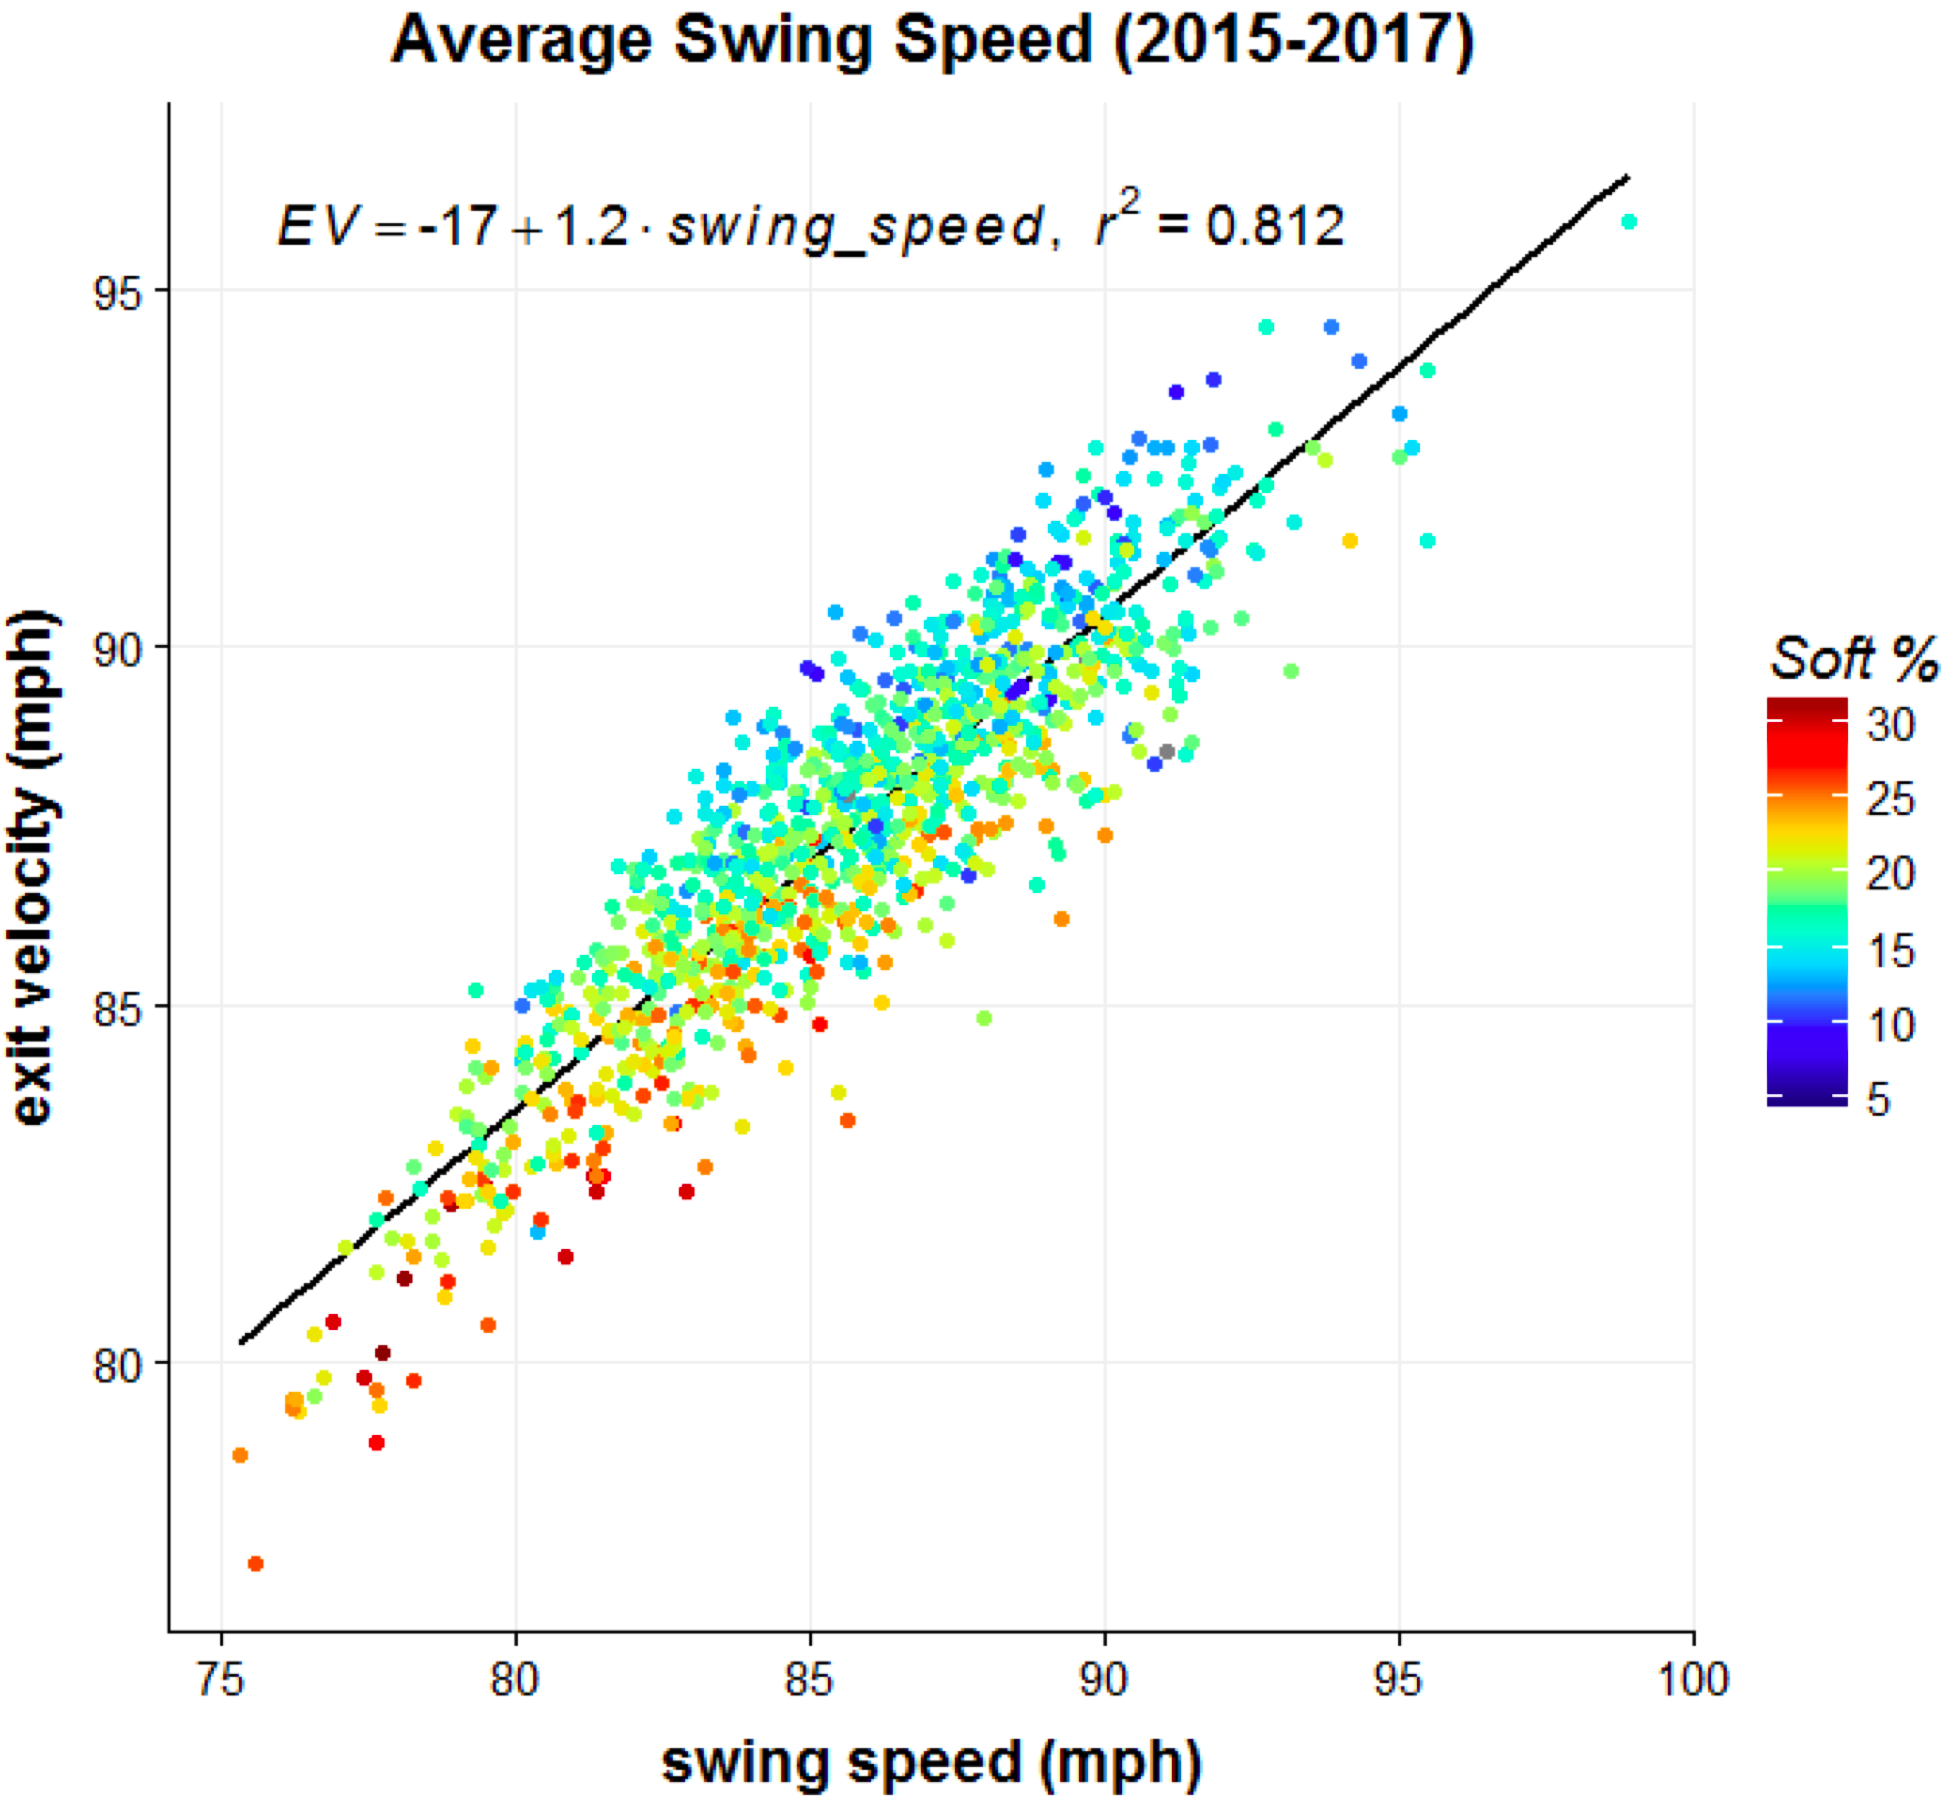 31 Oz Bat I Subtracted 0 42 Mph From The Estimated Swing Sds Because Every Extra Ounce Reduces That Sd By About